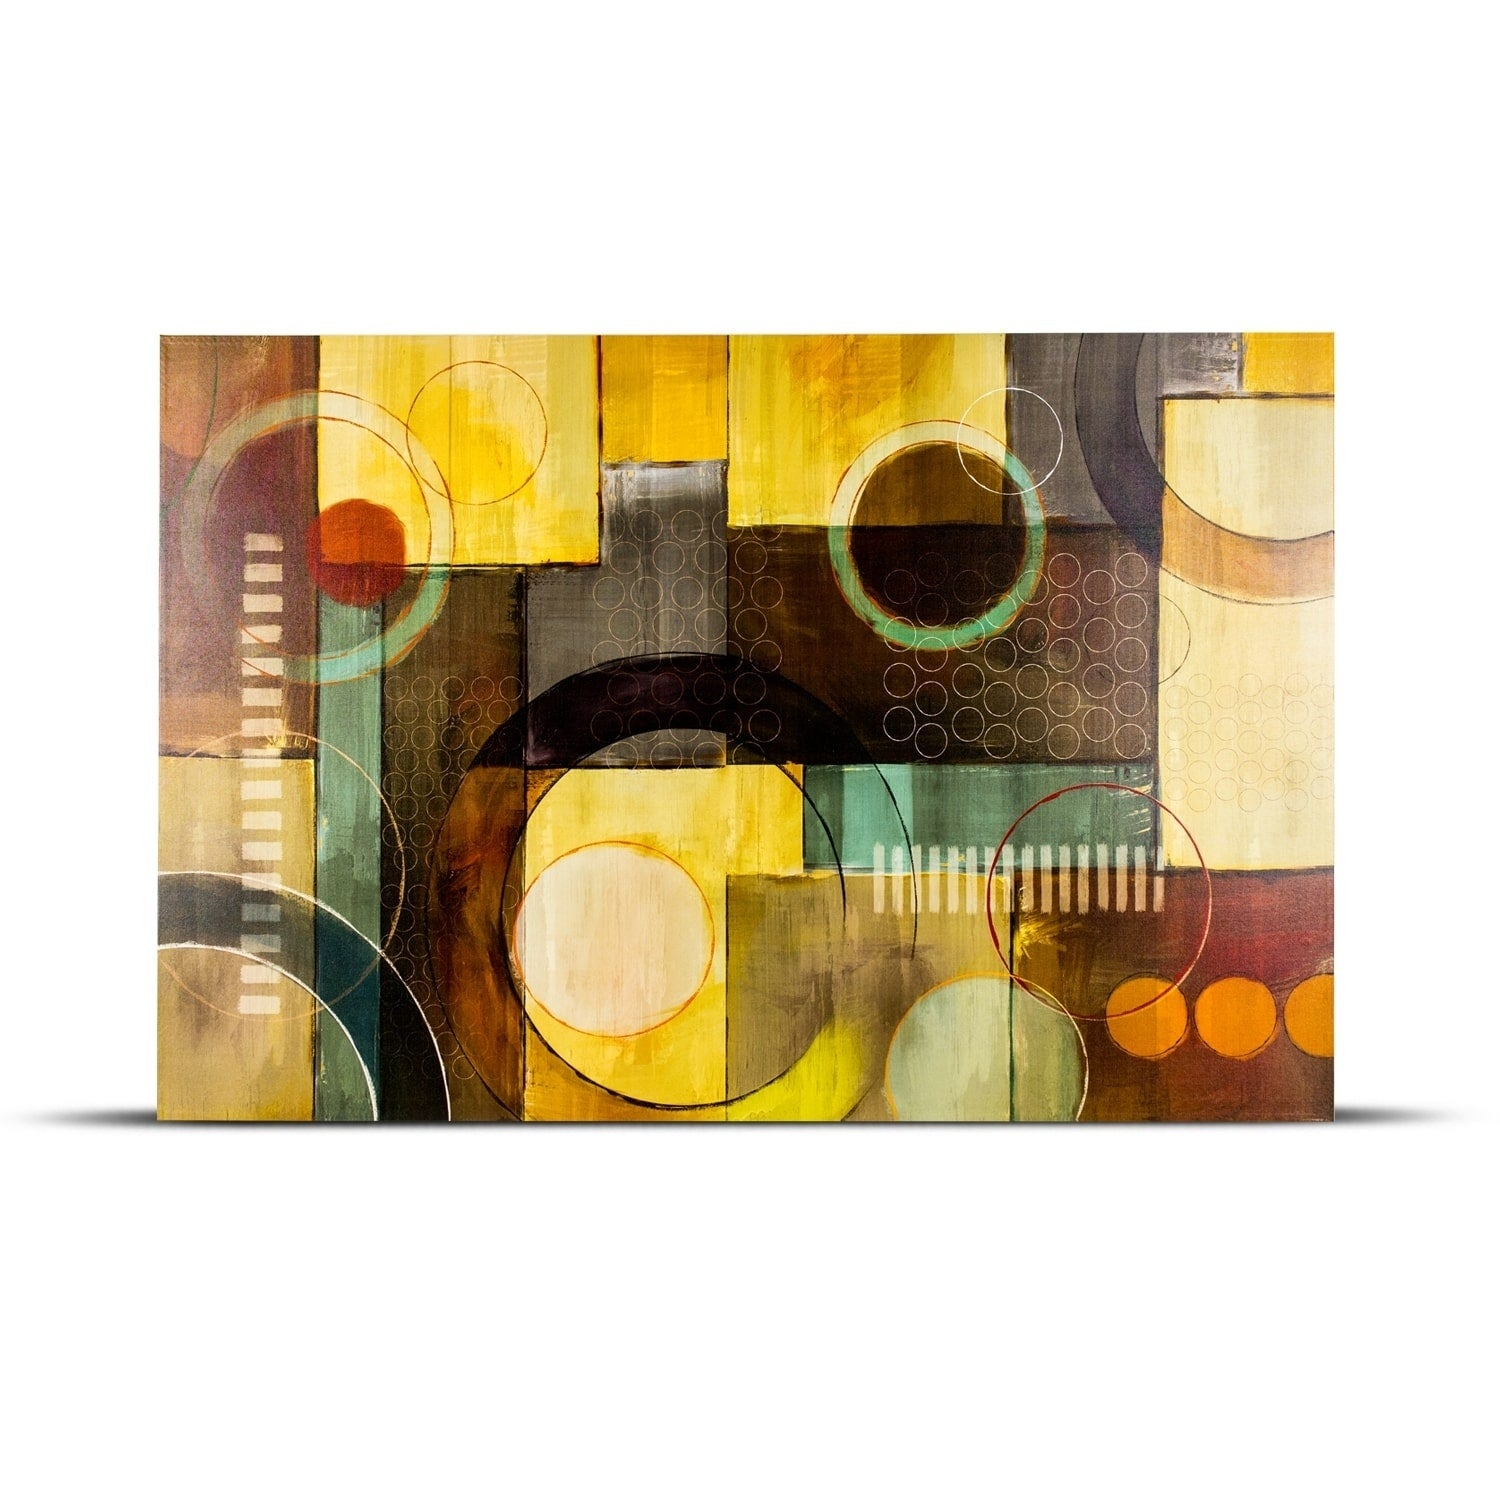 Abstract Geometric Shapes Wall Art Painting Print on Wrapped Canvas ...